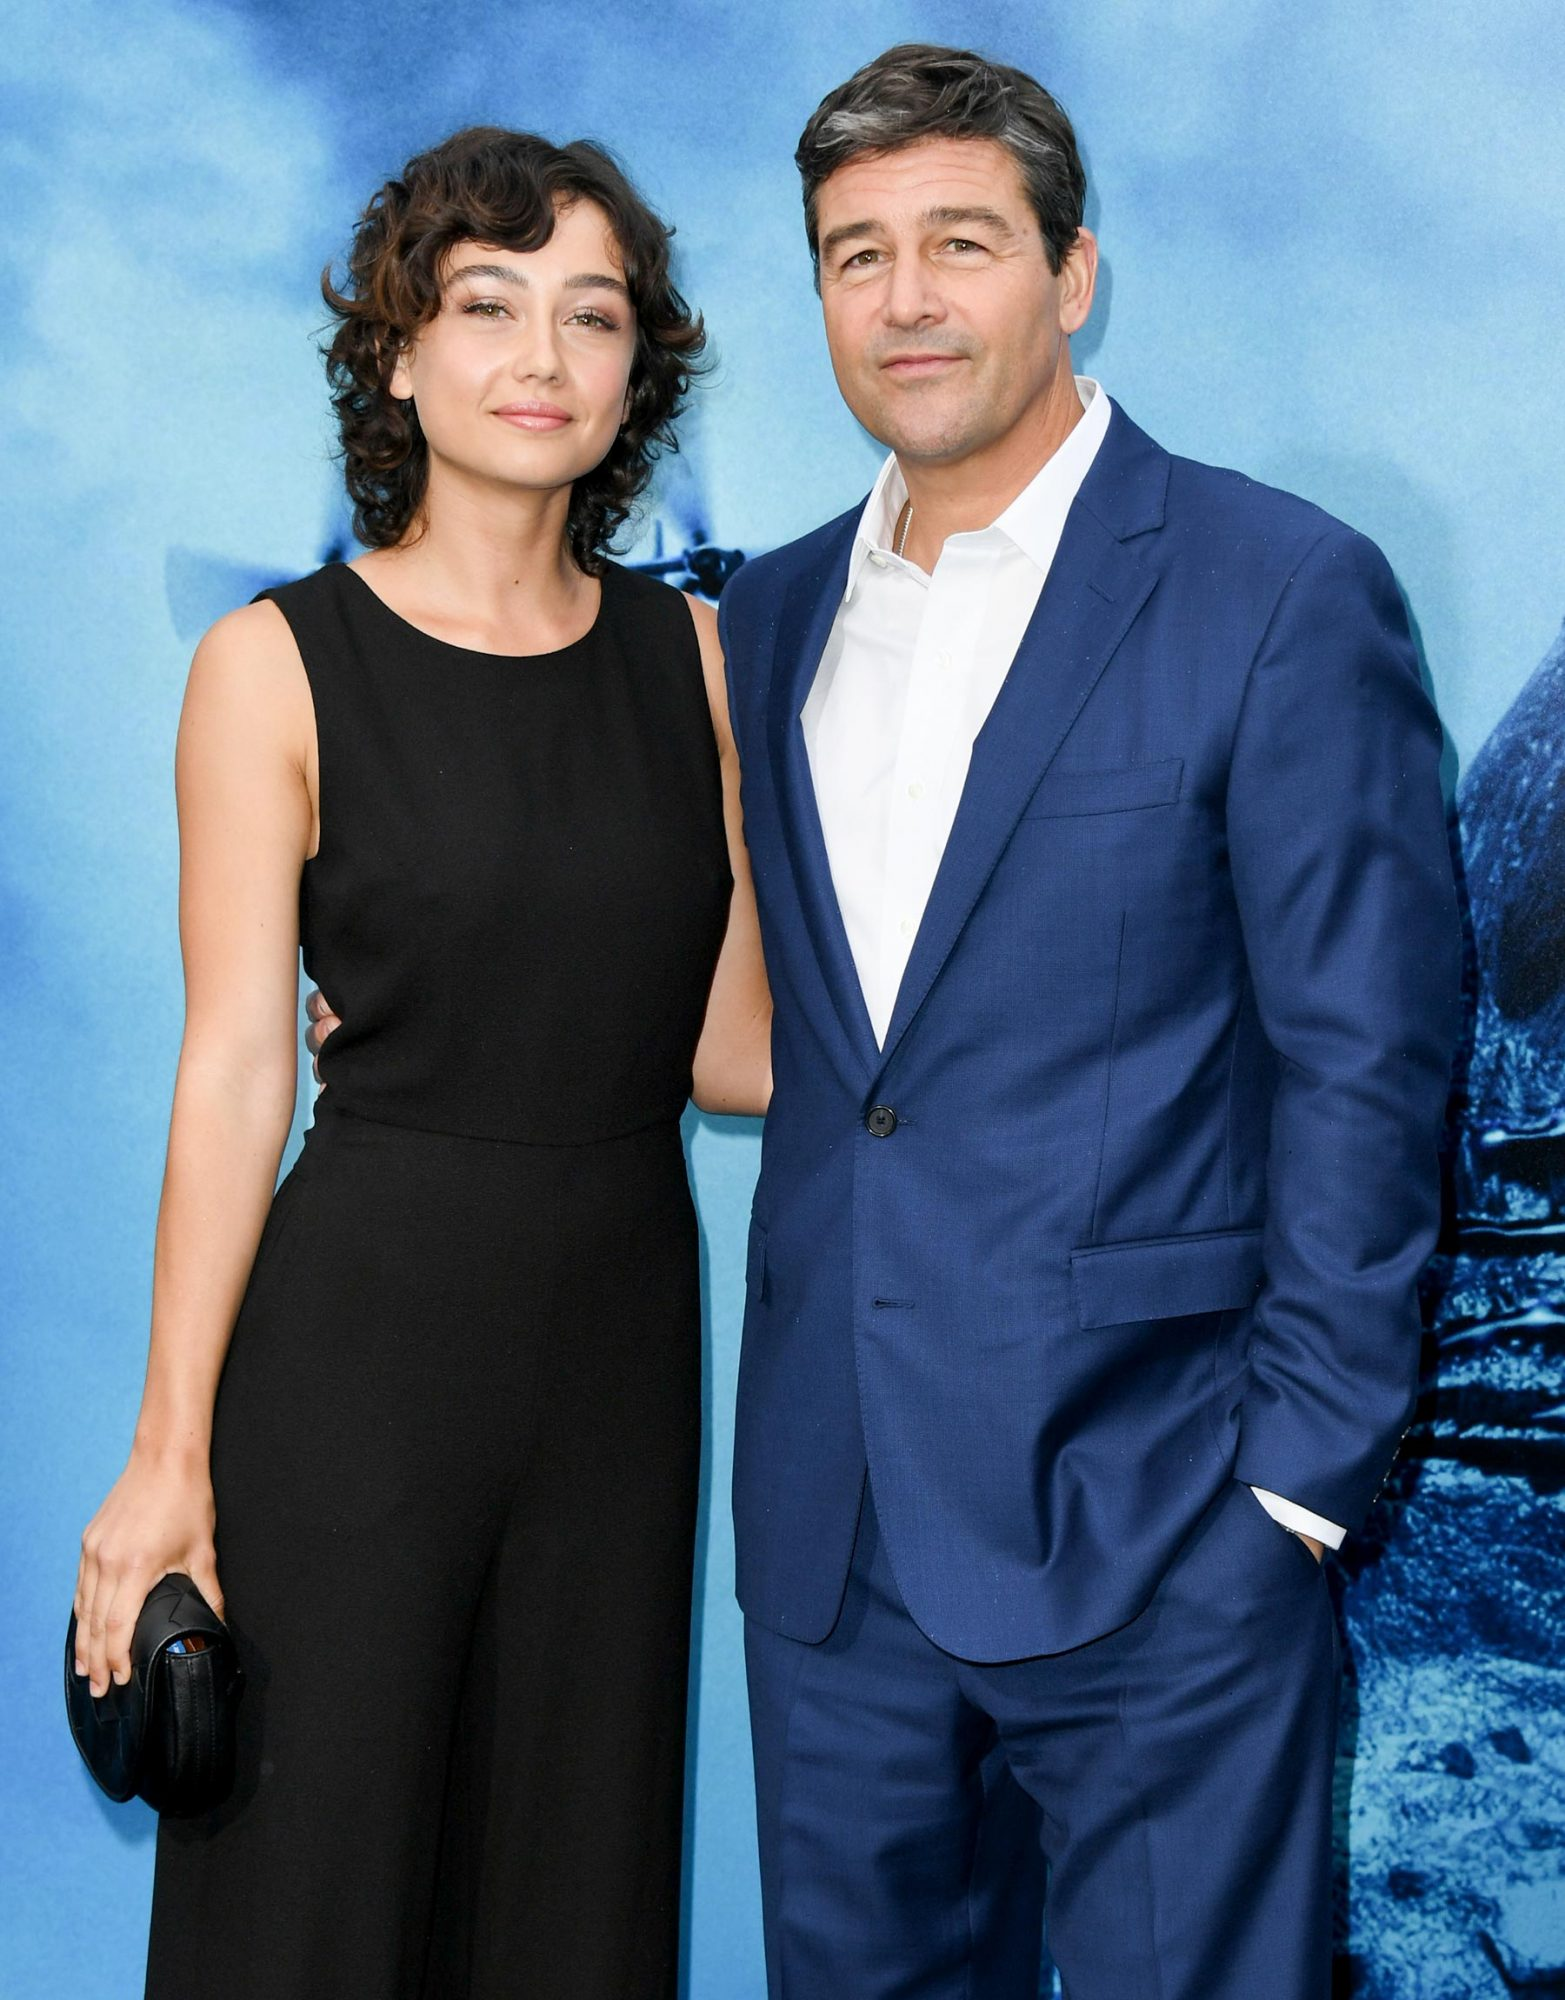 """HOLLYWOOD, CALIFORNIA - MAY 18: Kyle Chandler and daughter Sydney Chandler attend the Premiere Of Warner Bros. Pictures And Legendary Pictures' """"Godzilla: King Of The Monsters"""" at TCL Chinese Theatre on May 18, 2019 in Hollywood, California. (Photo by Jon Kopaloff/FilmMagic)"""